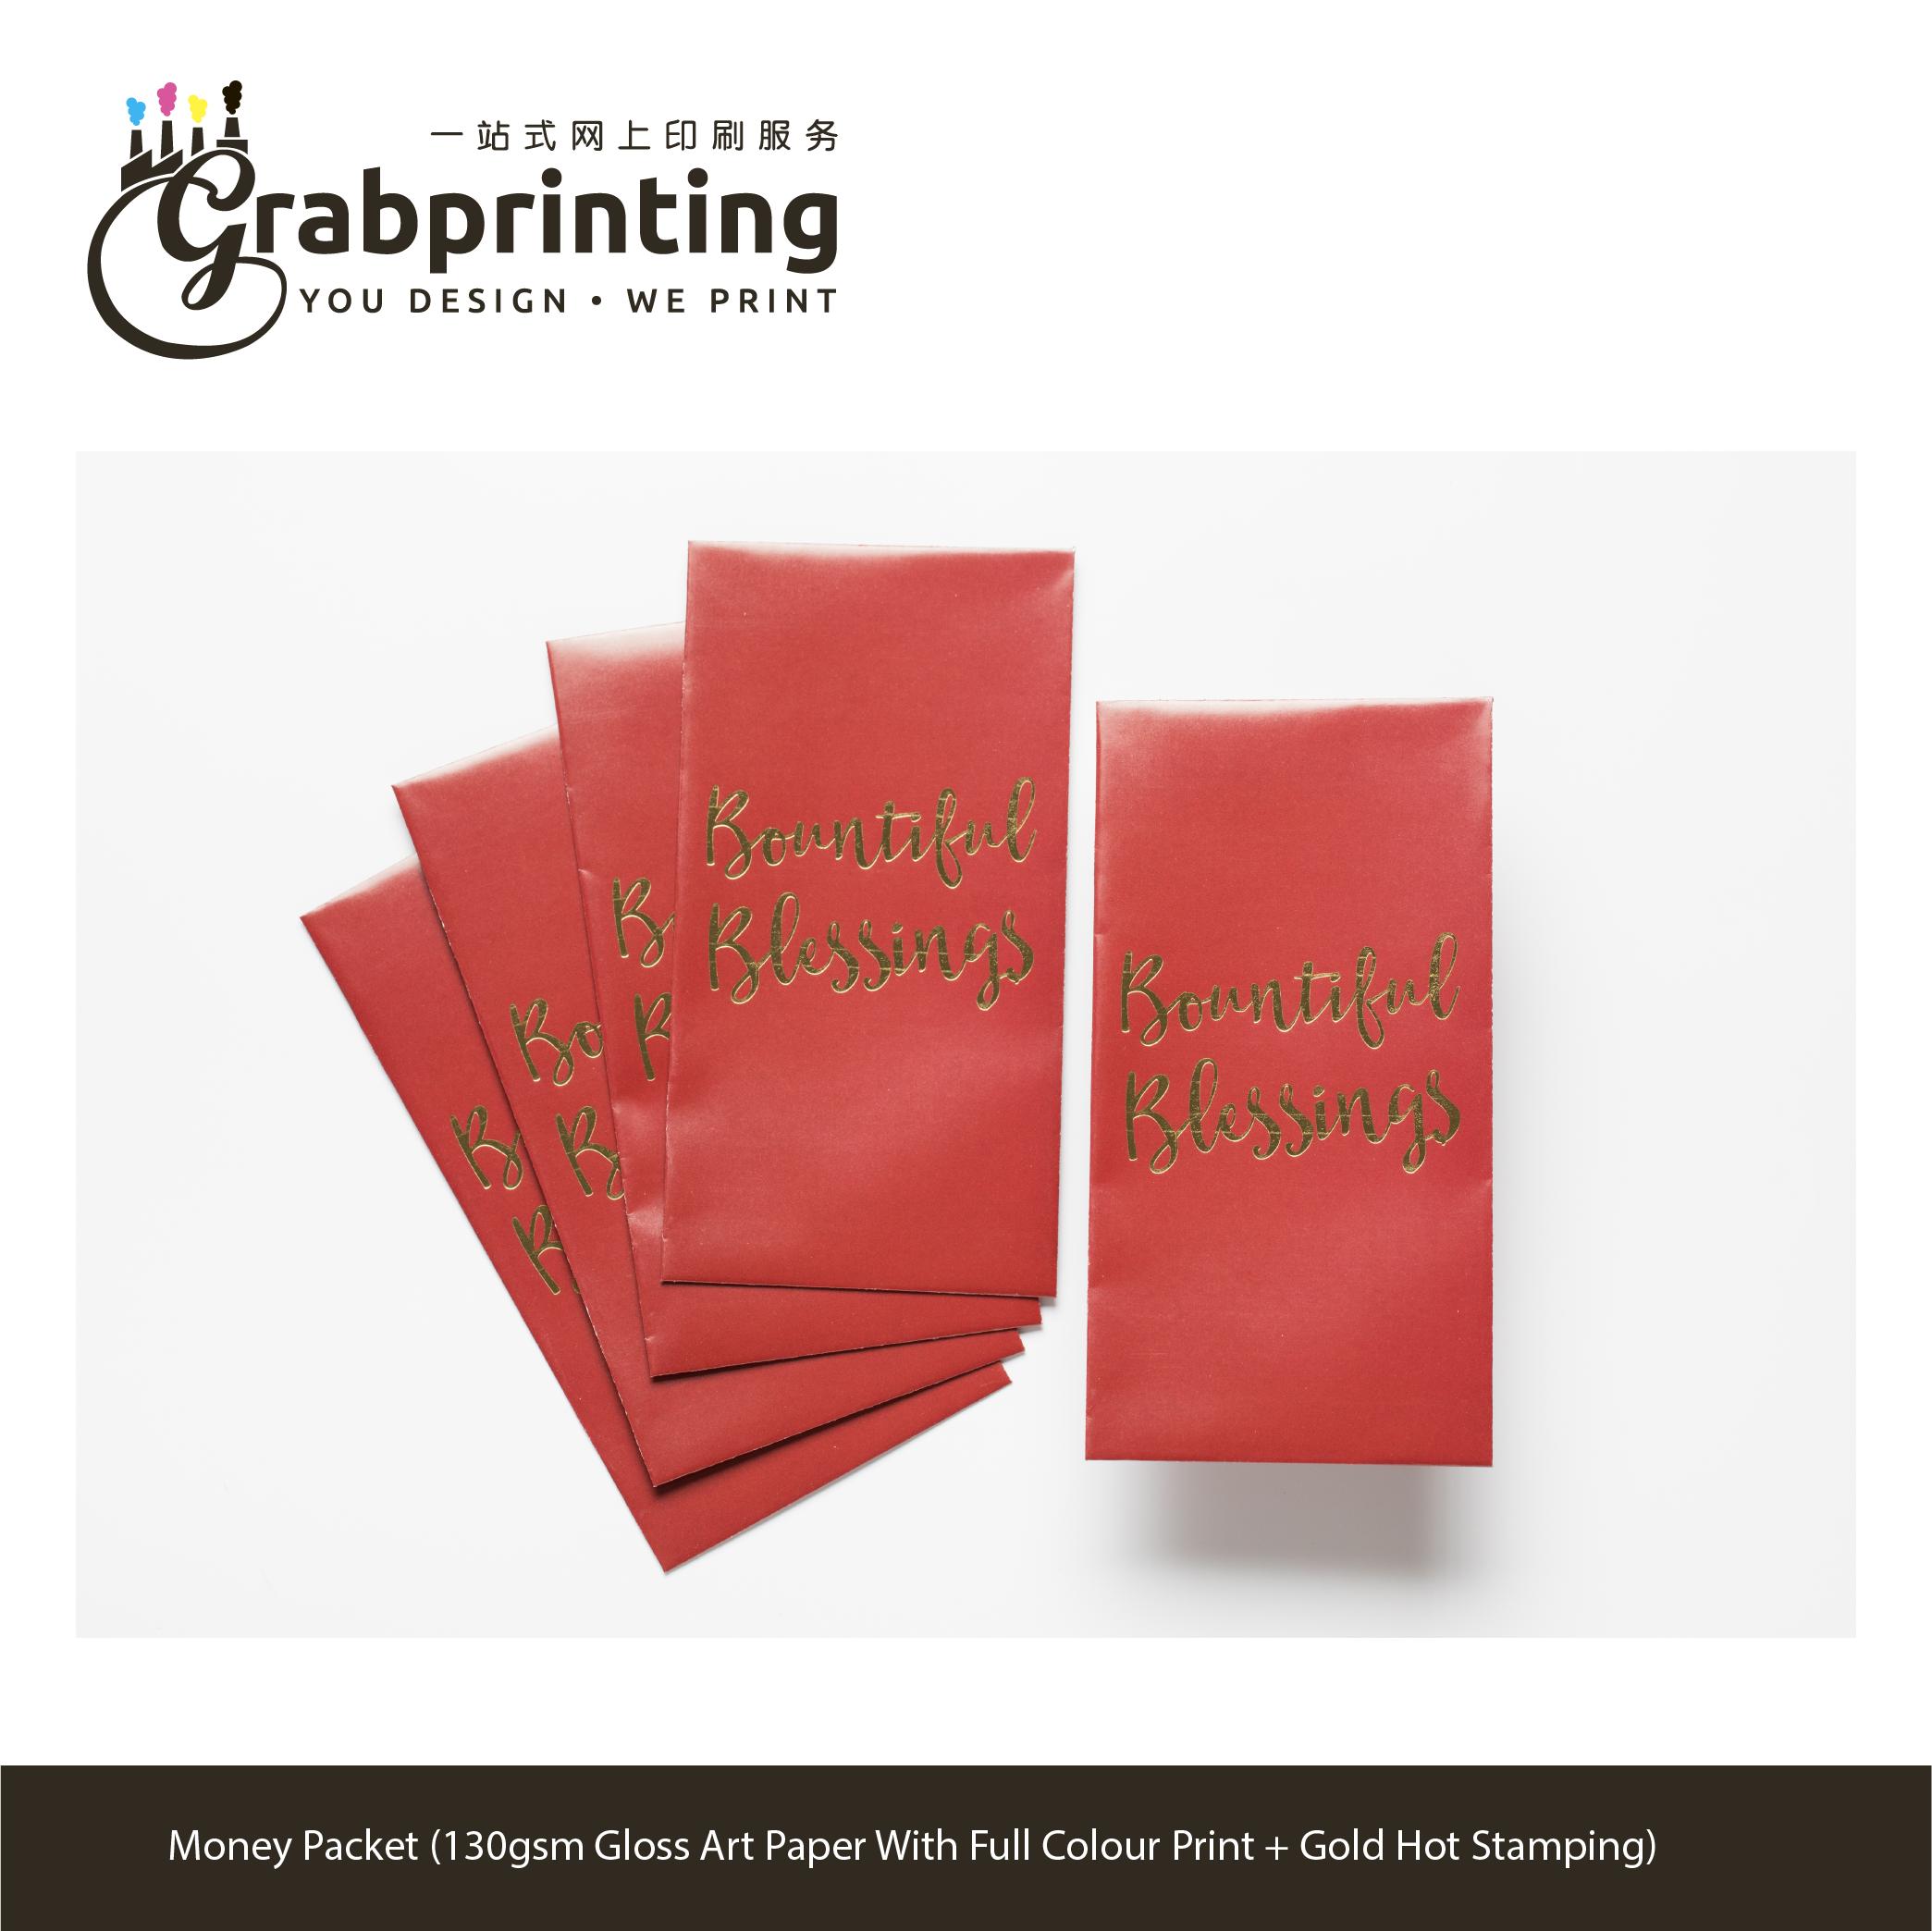 money packet printing Money Packet 130gsm Gloss Art Paper grabprinting 03Money Packet 130gsm Gloss Art Paper With Full Colour Print Gold Hot Stamping 501px 501px